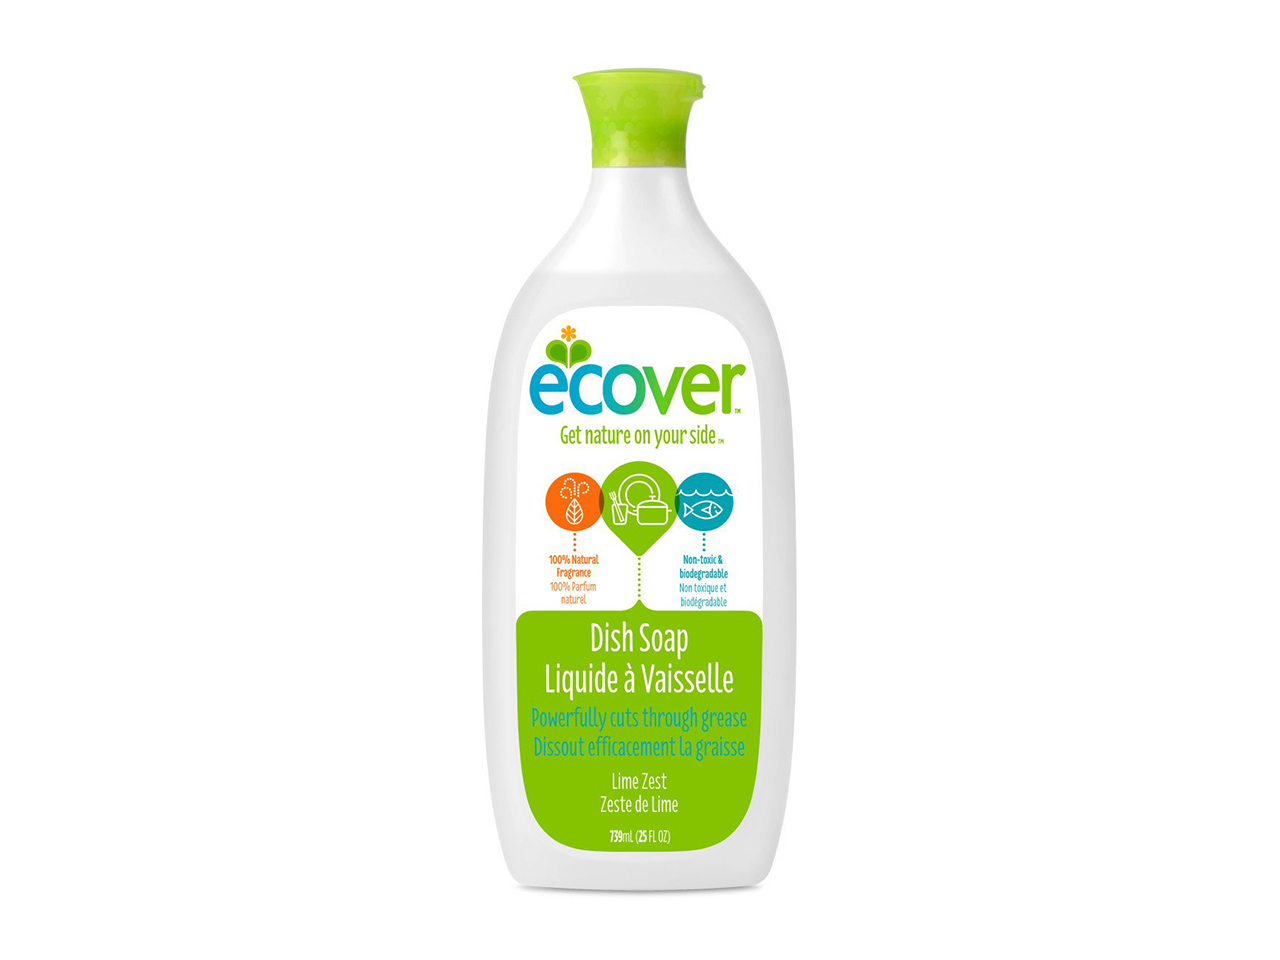 Eco-friendly cleaners, white ecover dish soap bottle with green cap and label